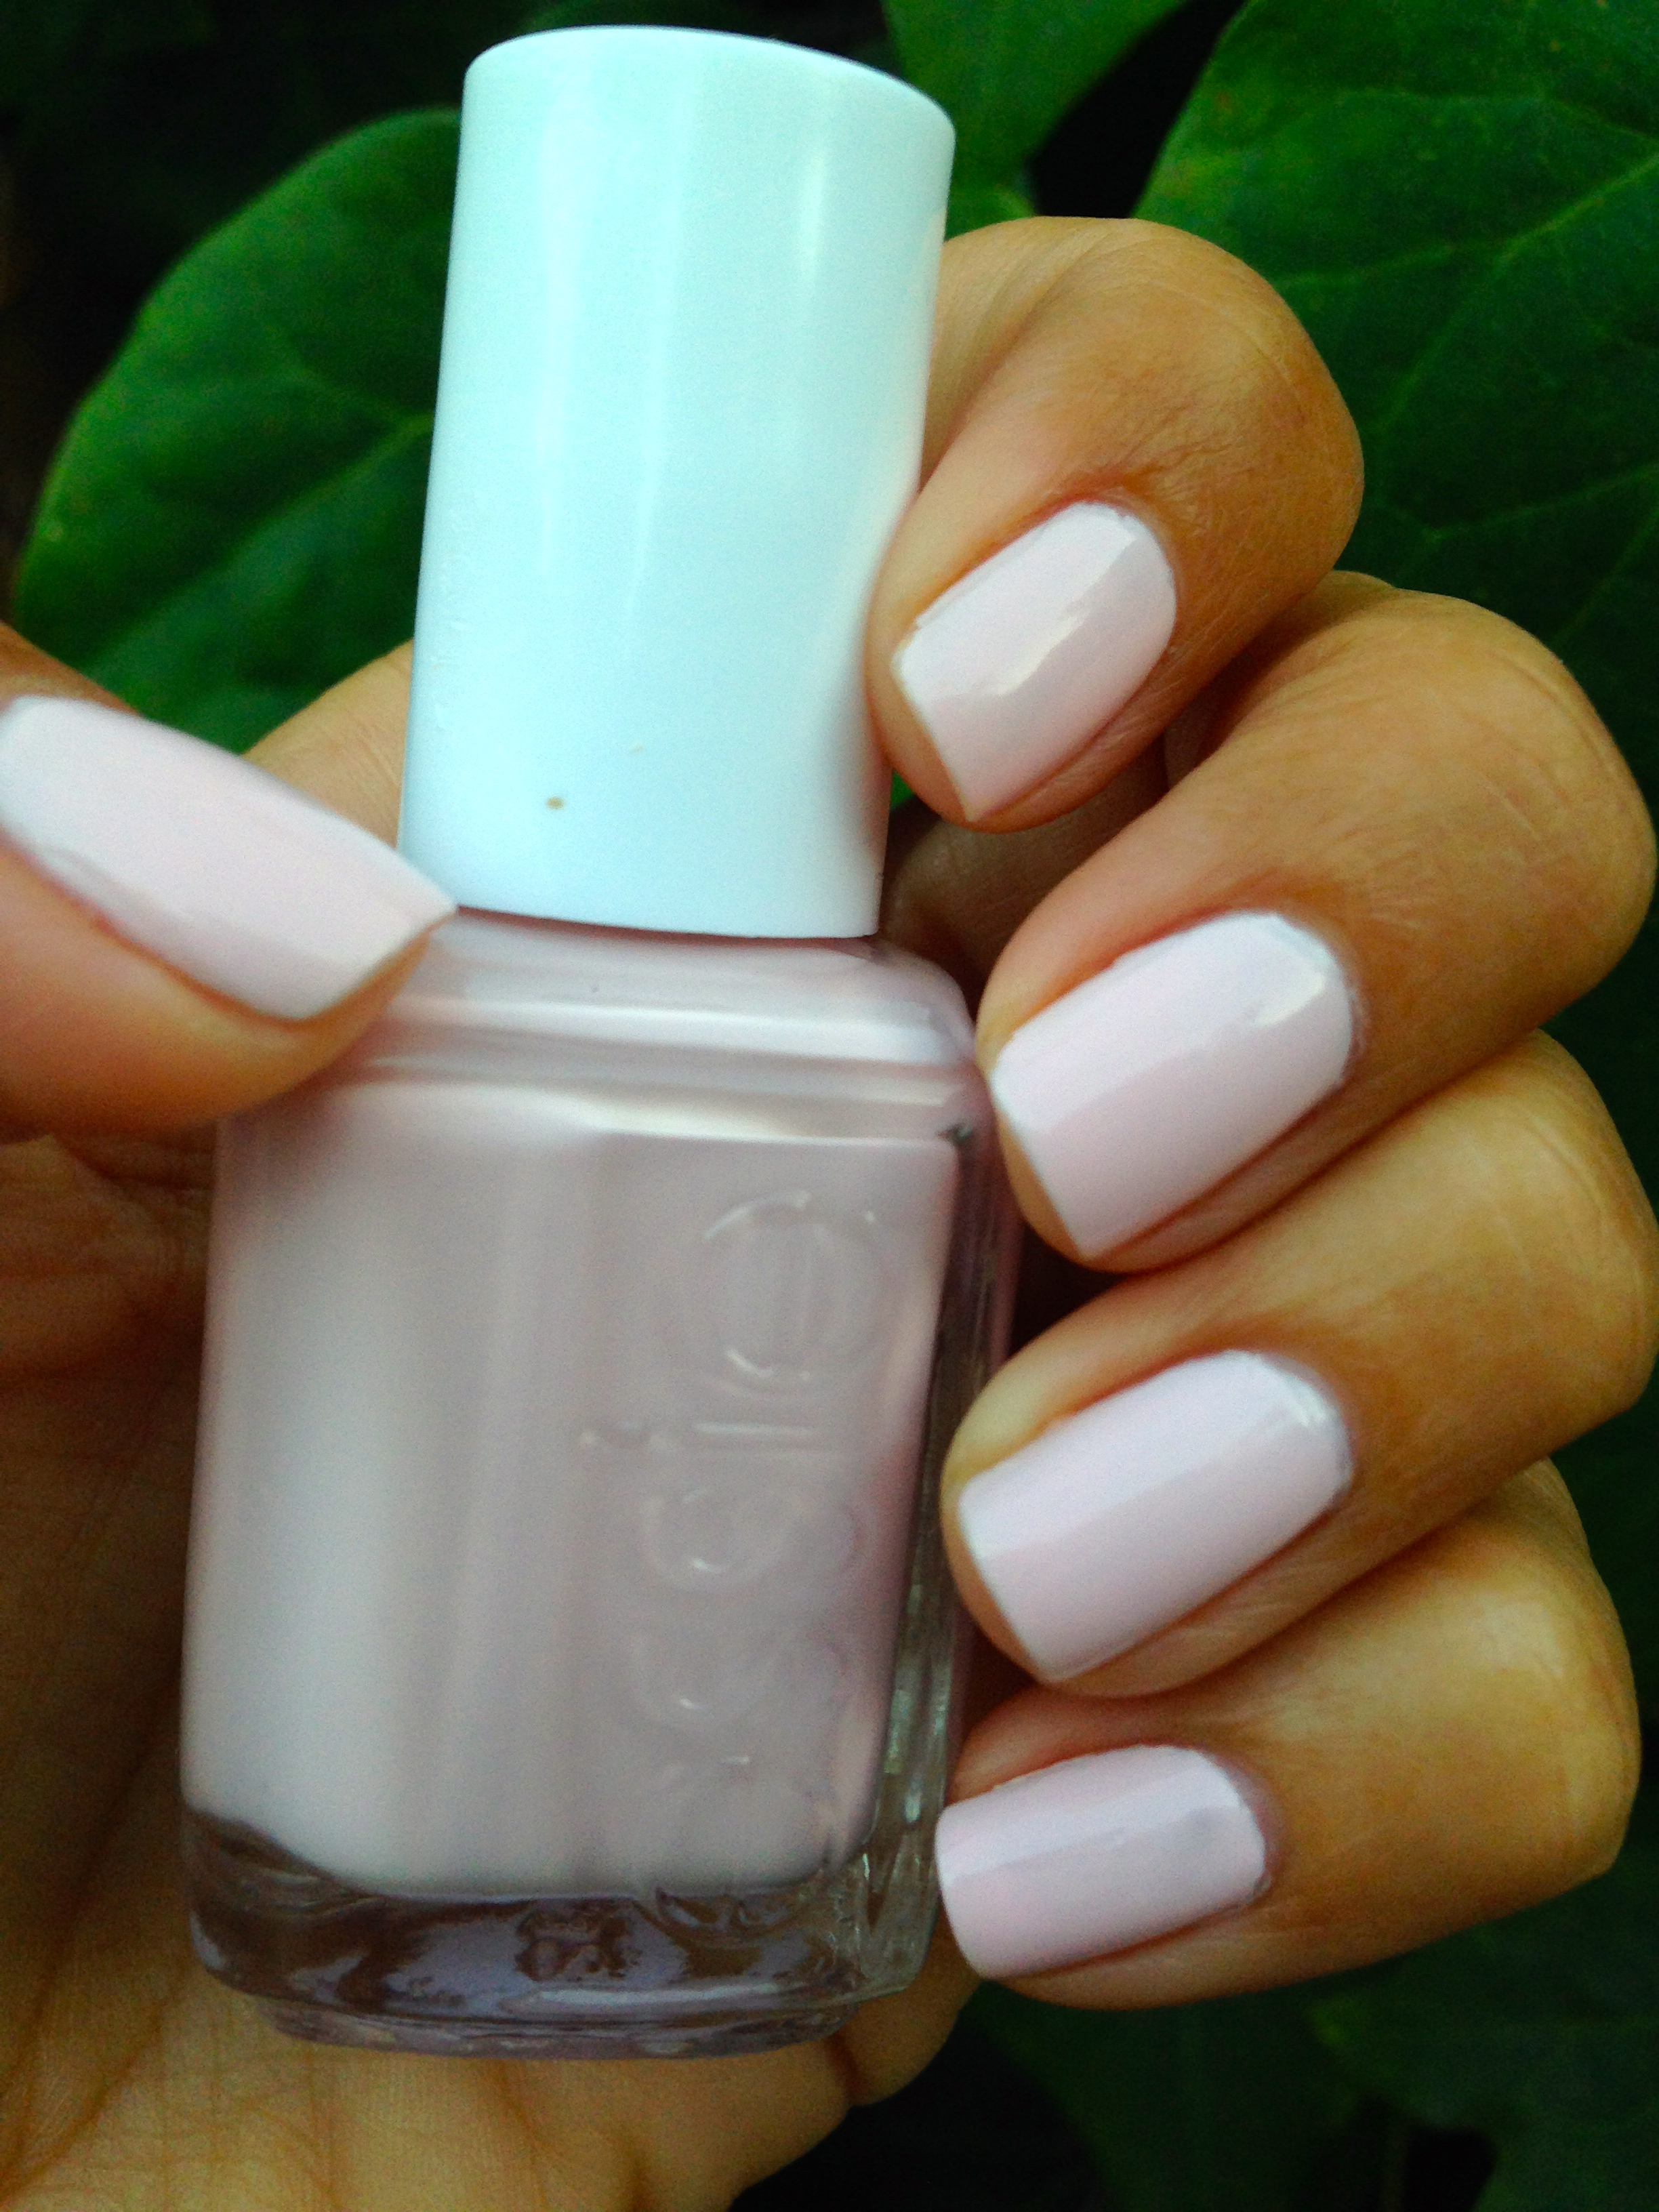 essi nail color: Romper Room, $8.50 .